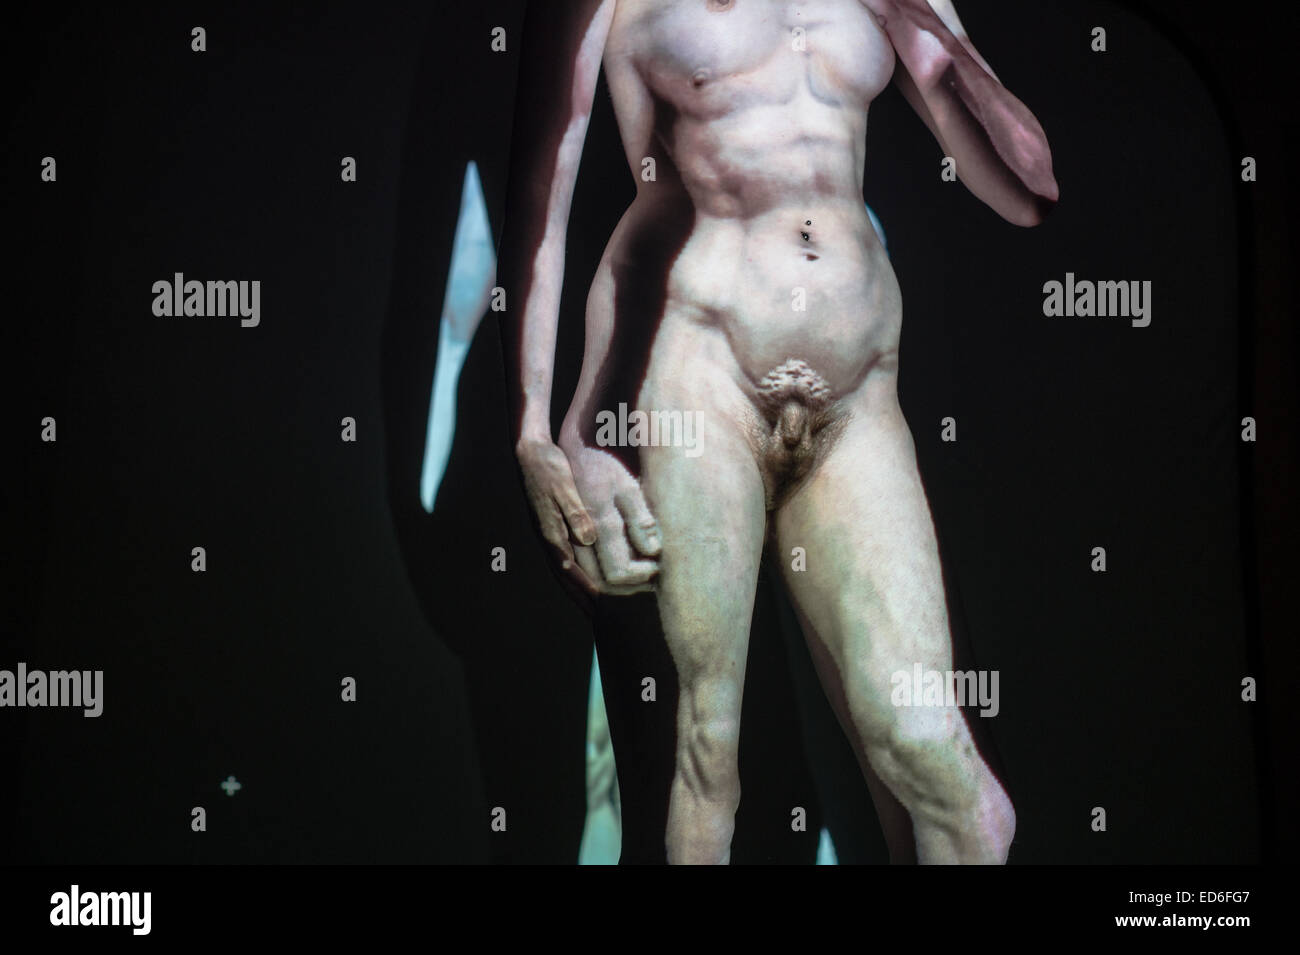 male-transgender-nude